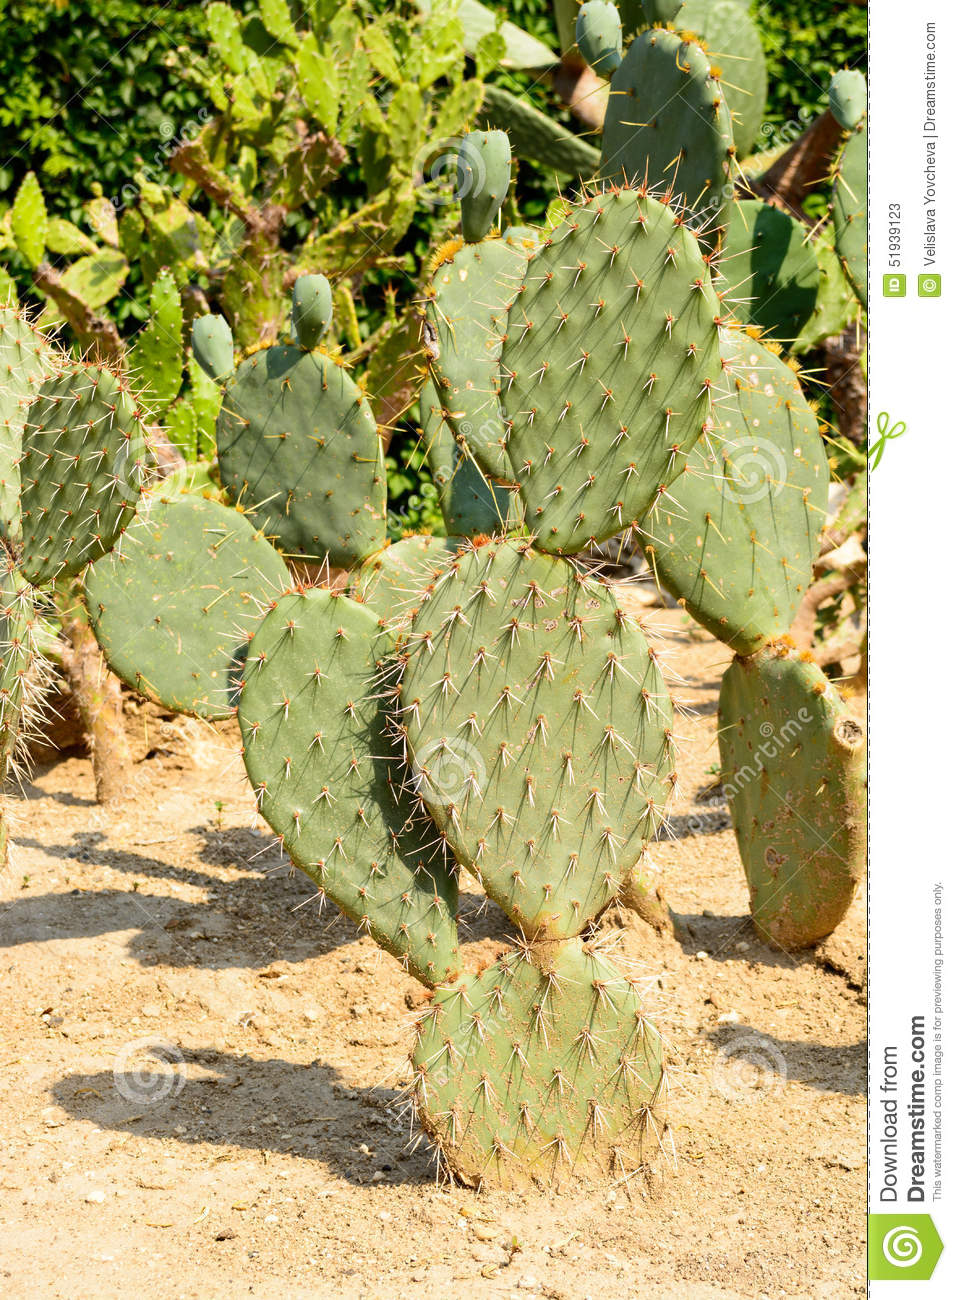 Green Flat Rounded Cladodes Of Opuntia Cactus Stock Photo ...